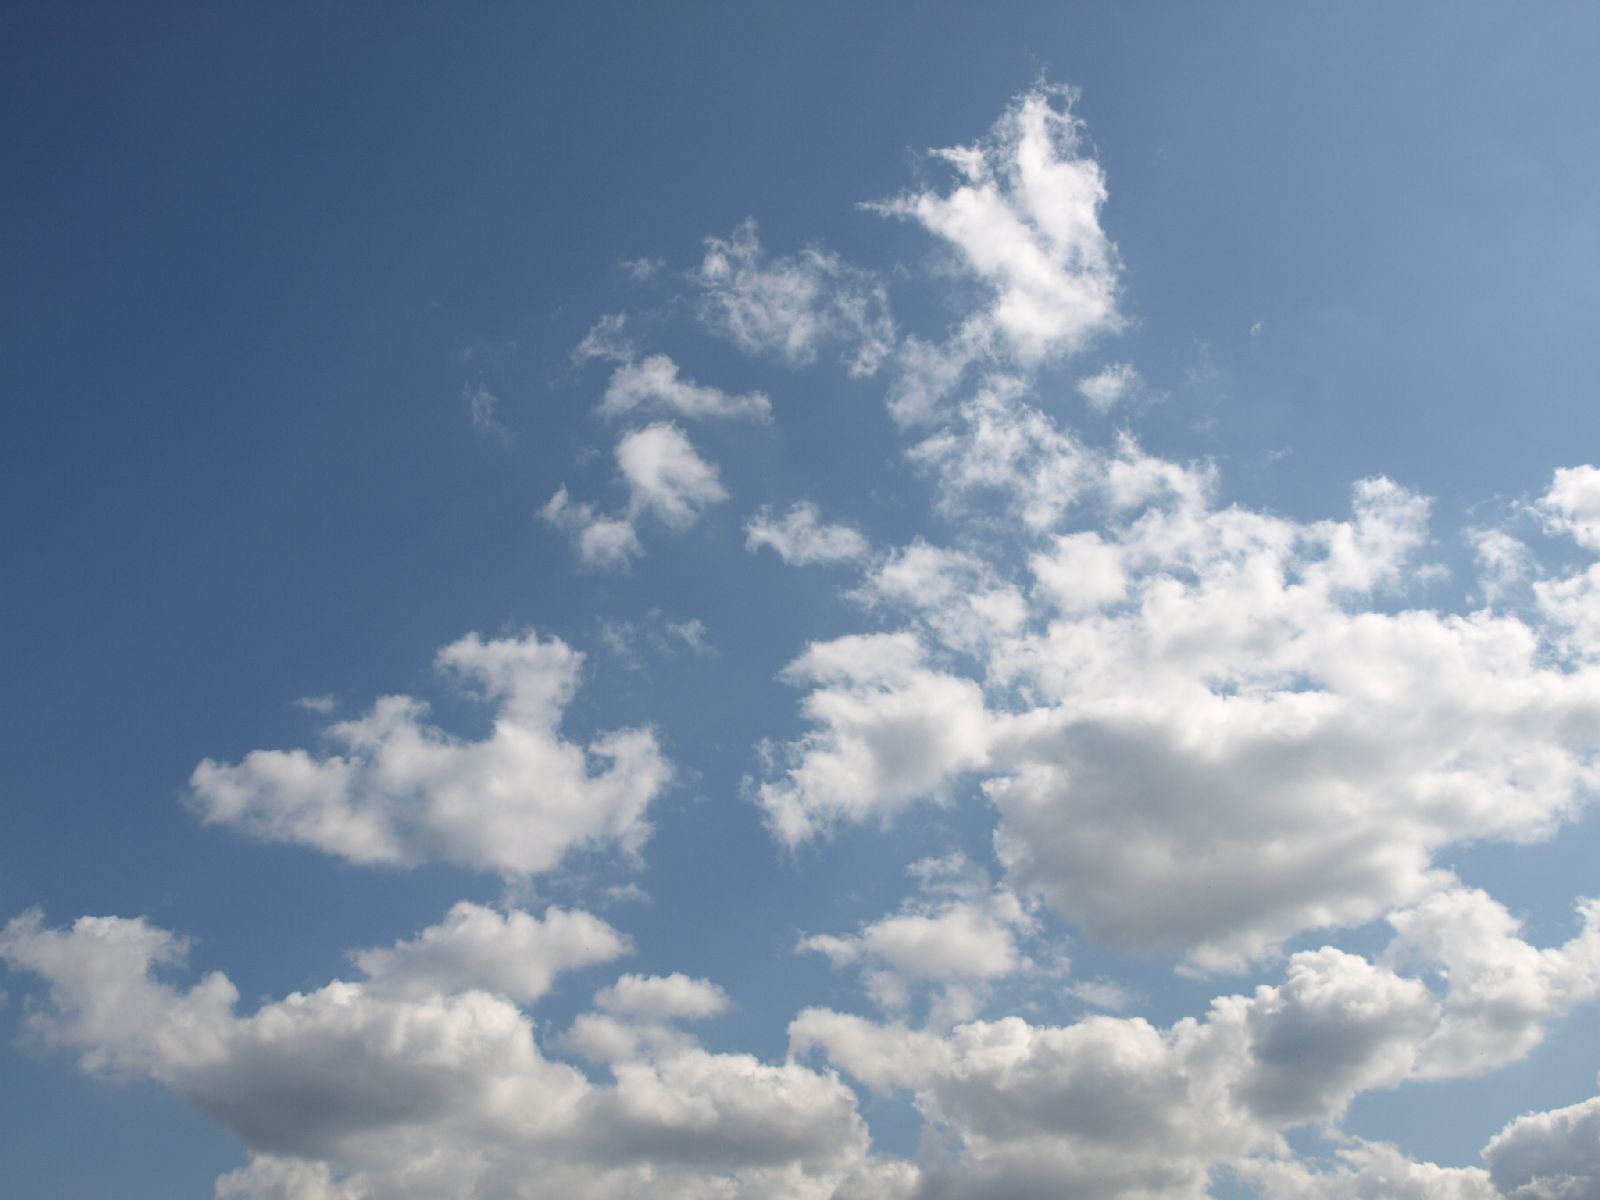 Sky_Clouds_Photo_Texture_A_P4241752